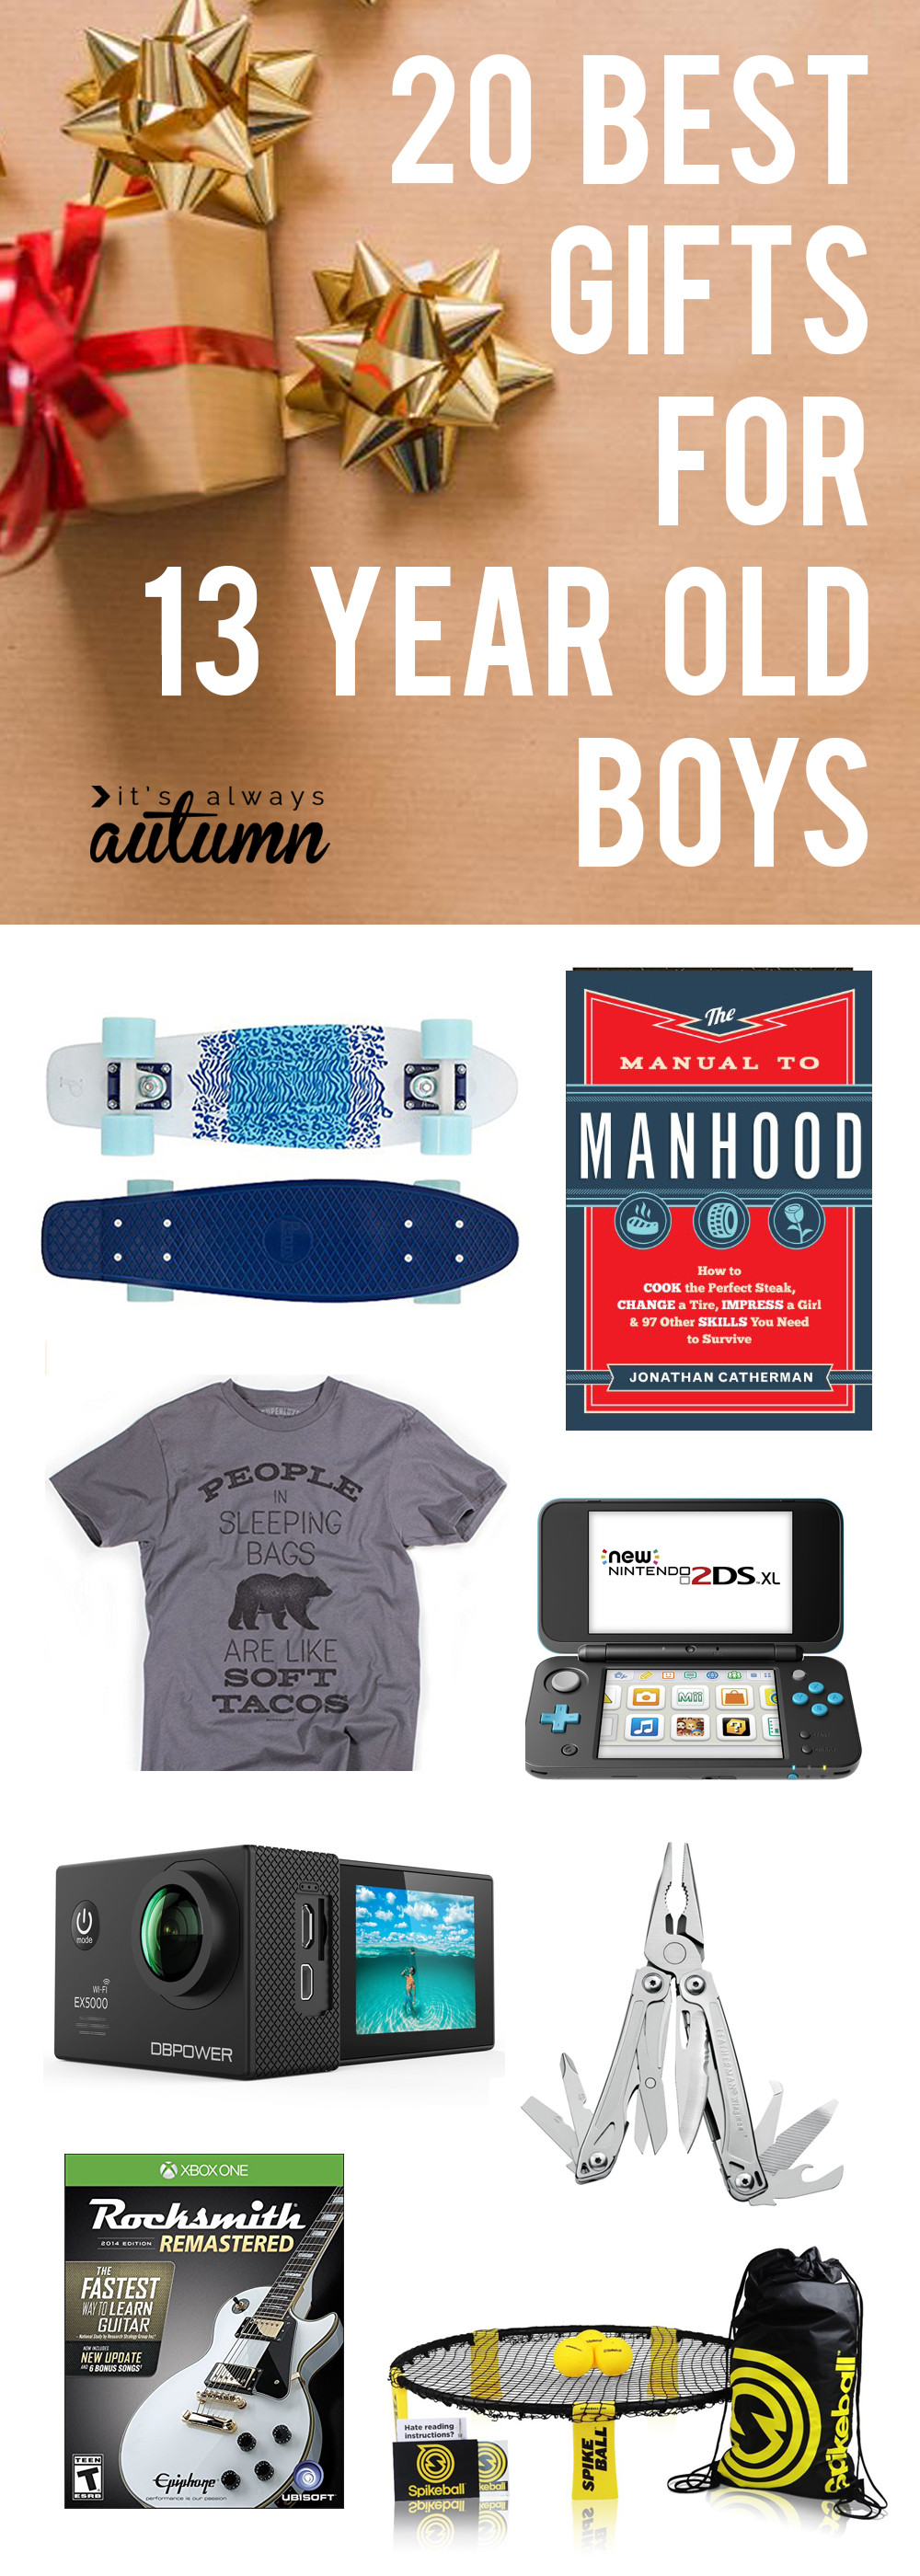 Best ideas about Good Birthday Gifts For 13 Year Old Boy . Save or Pin best Christmas ts for 13 year old boys It s Always Autumn Now.